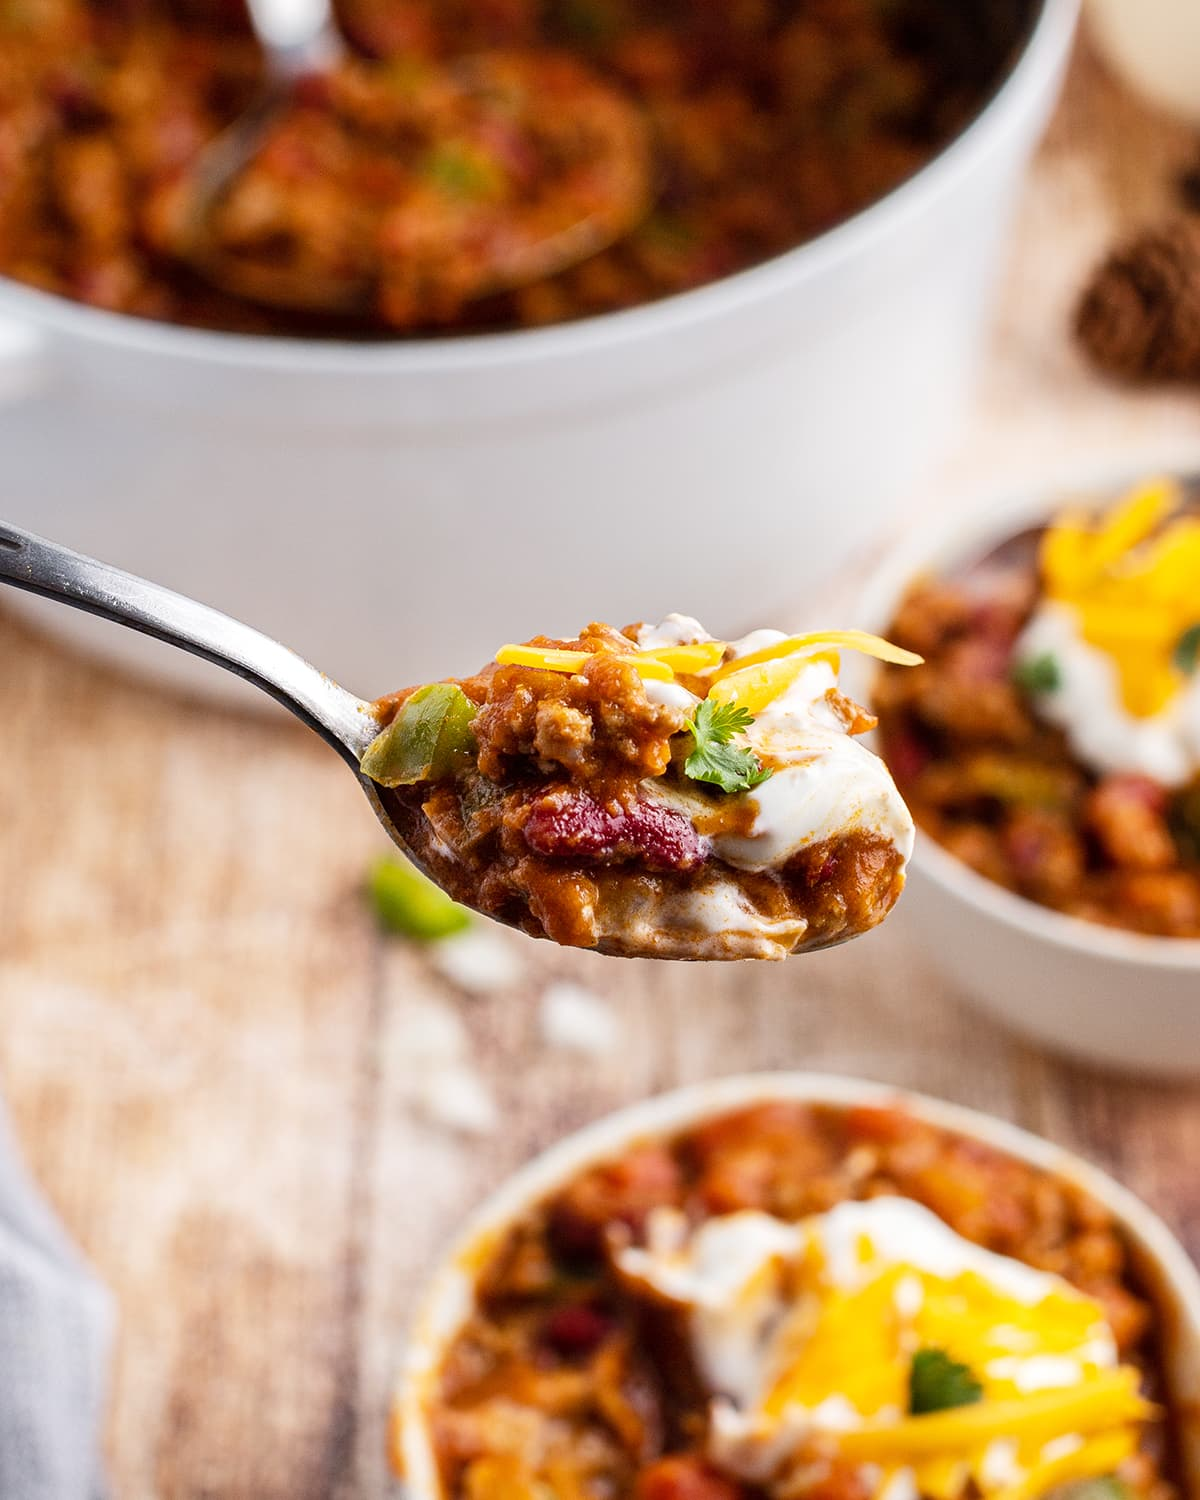 A spoonful of chili topped with cheese and cilantro.